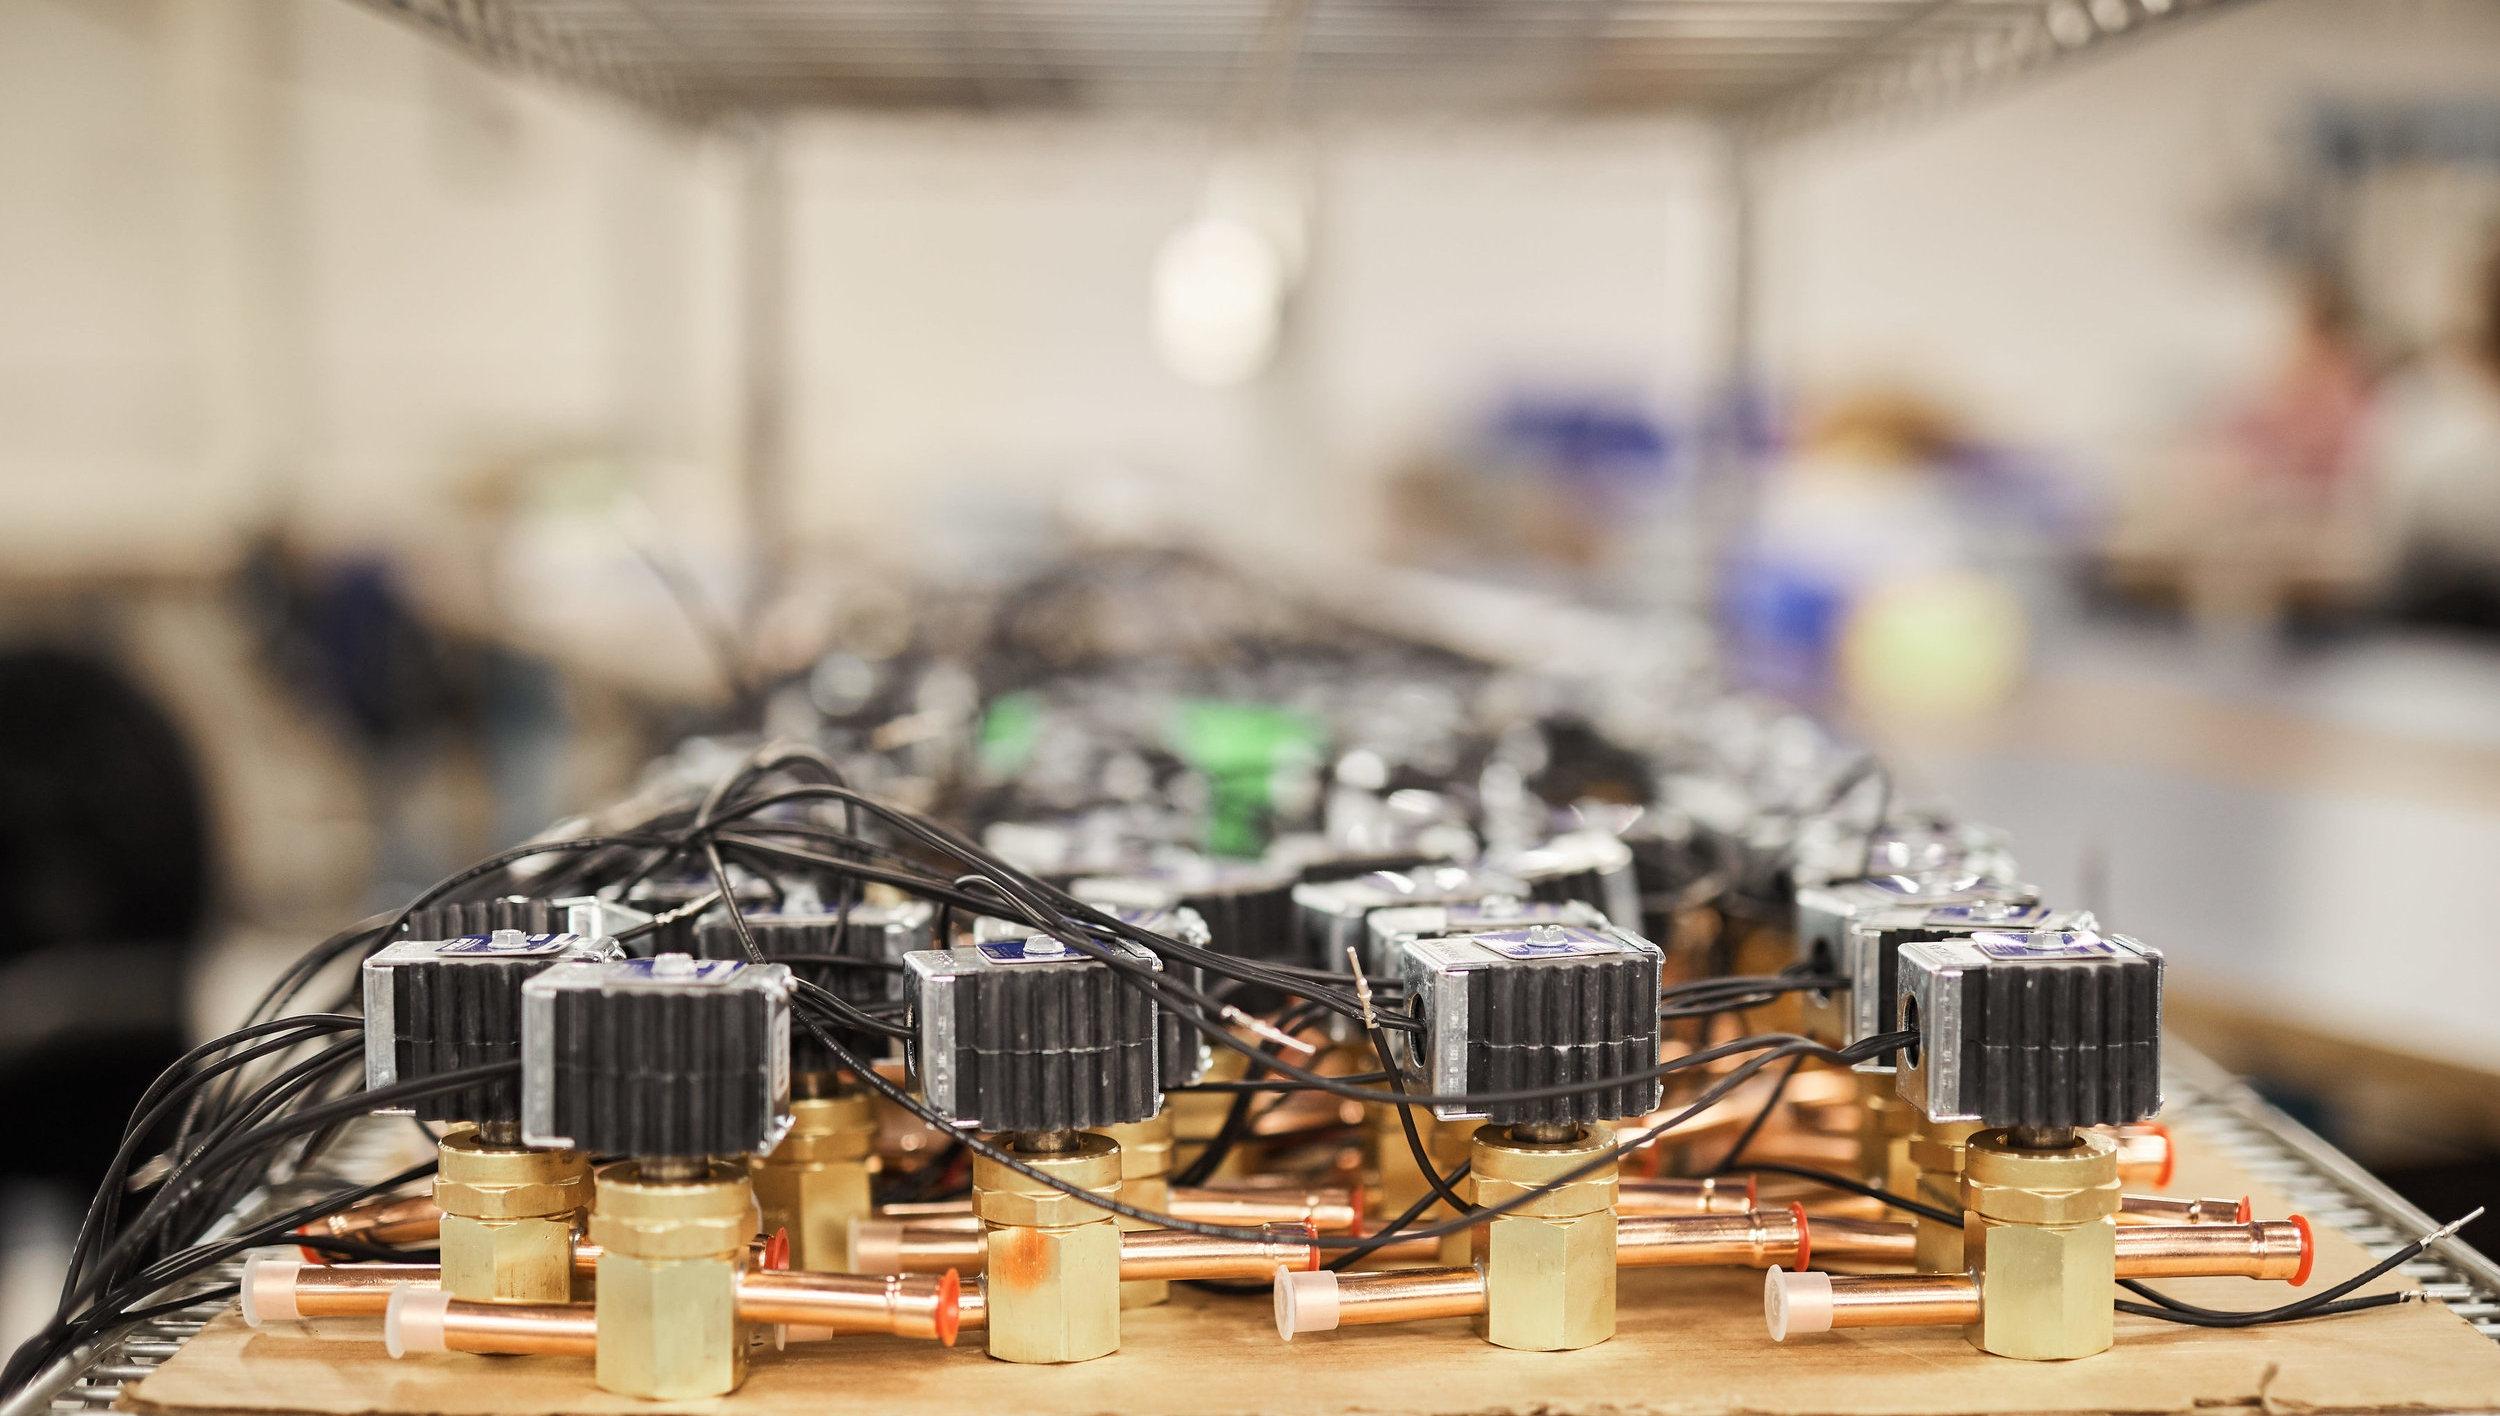 Value Add - We do a large array of value add processes, whether it's adding connectors to components such as valves, blower fans, thermisters, to rewiring motors or switches.